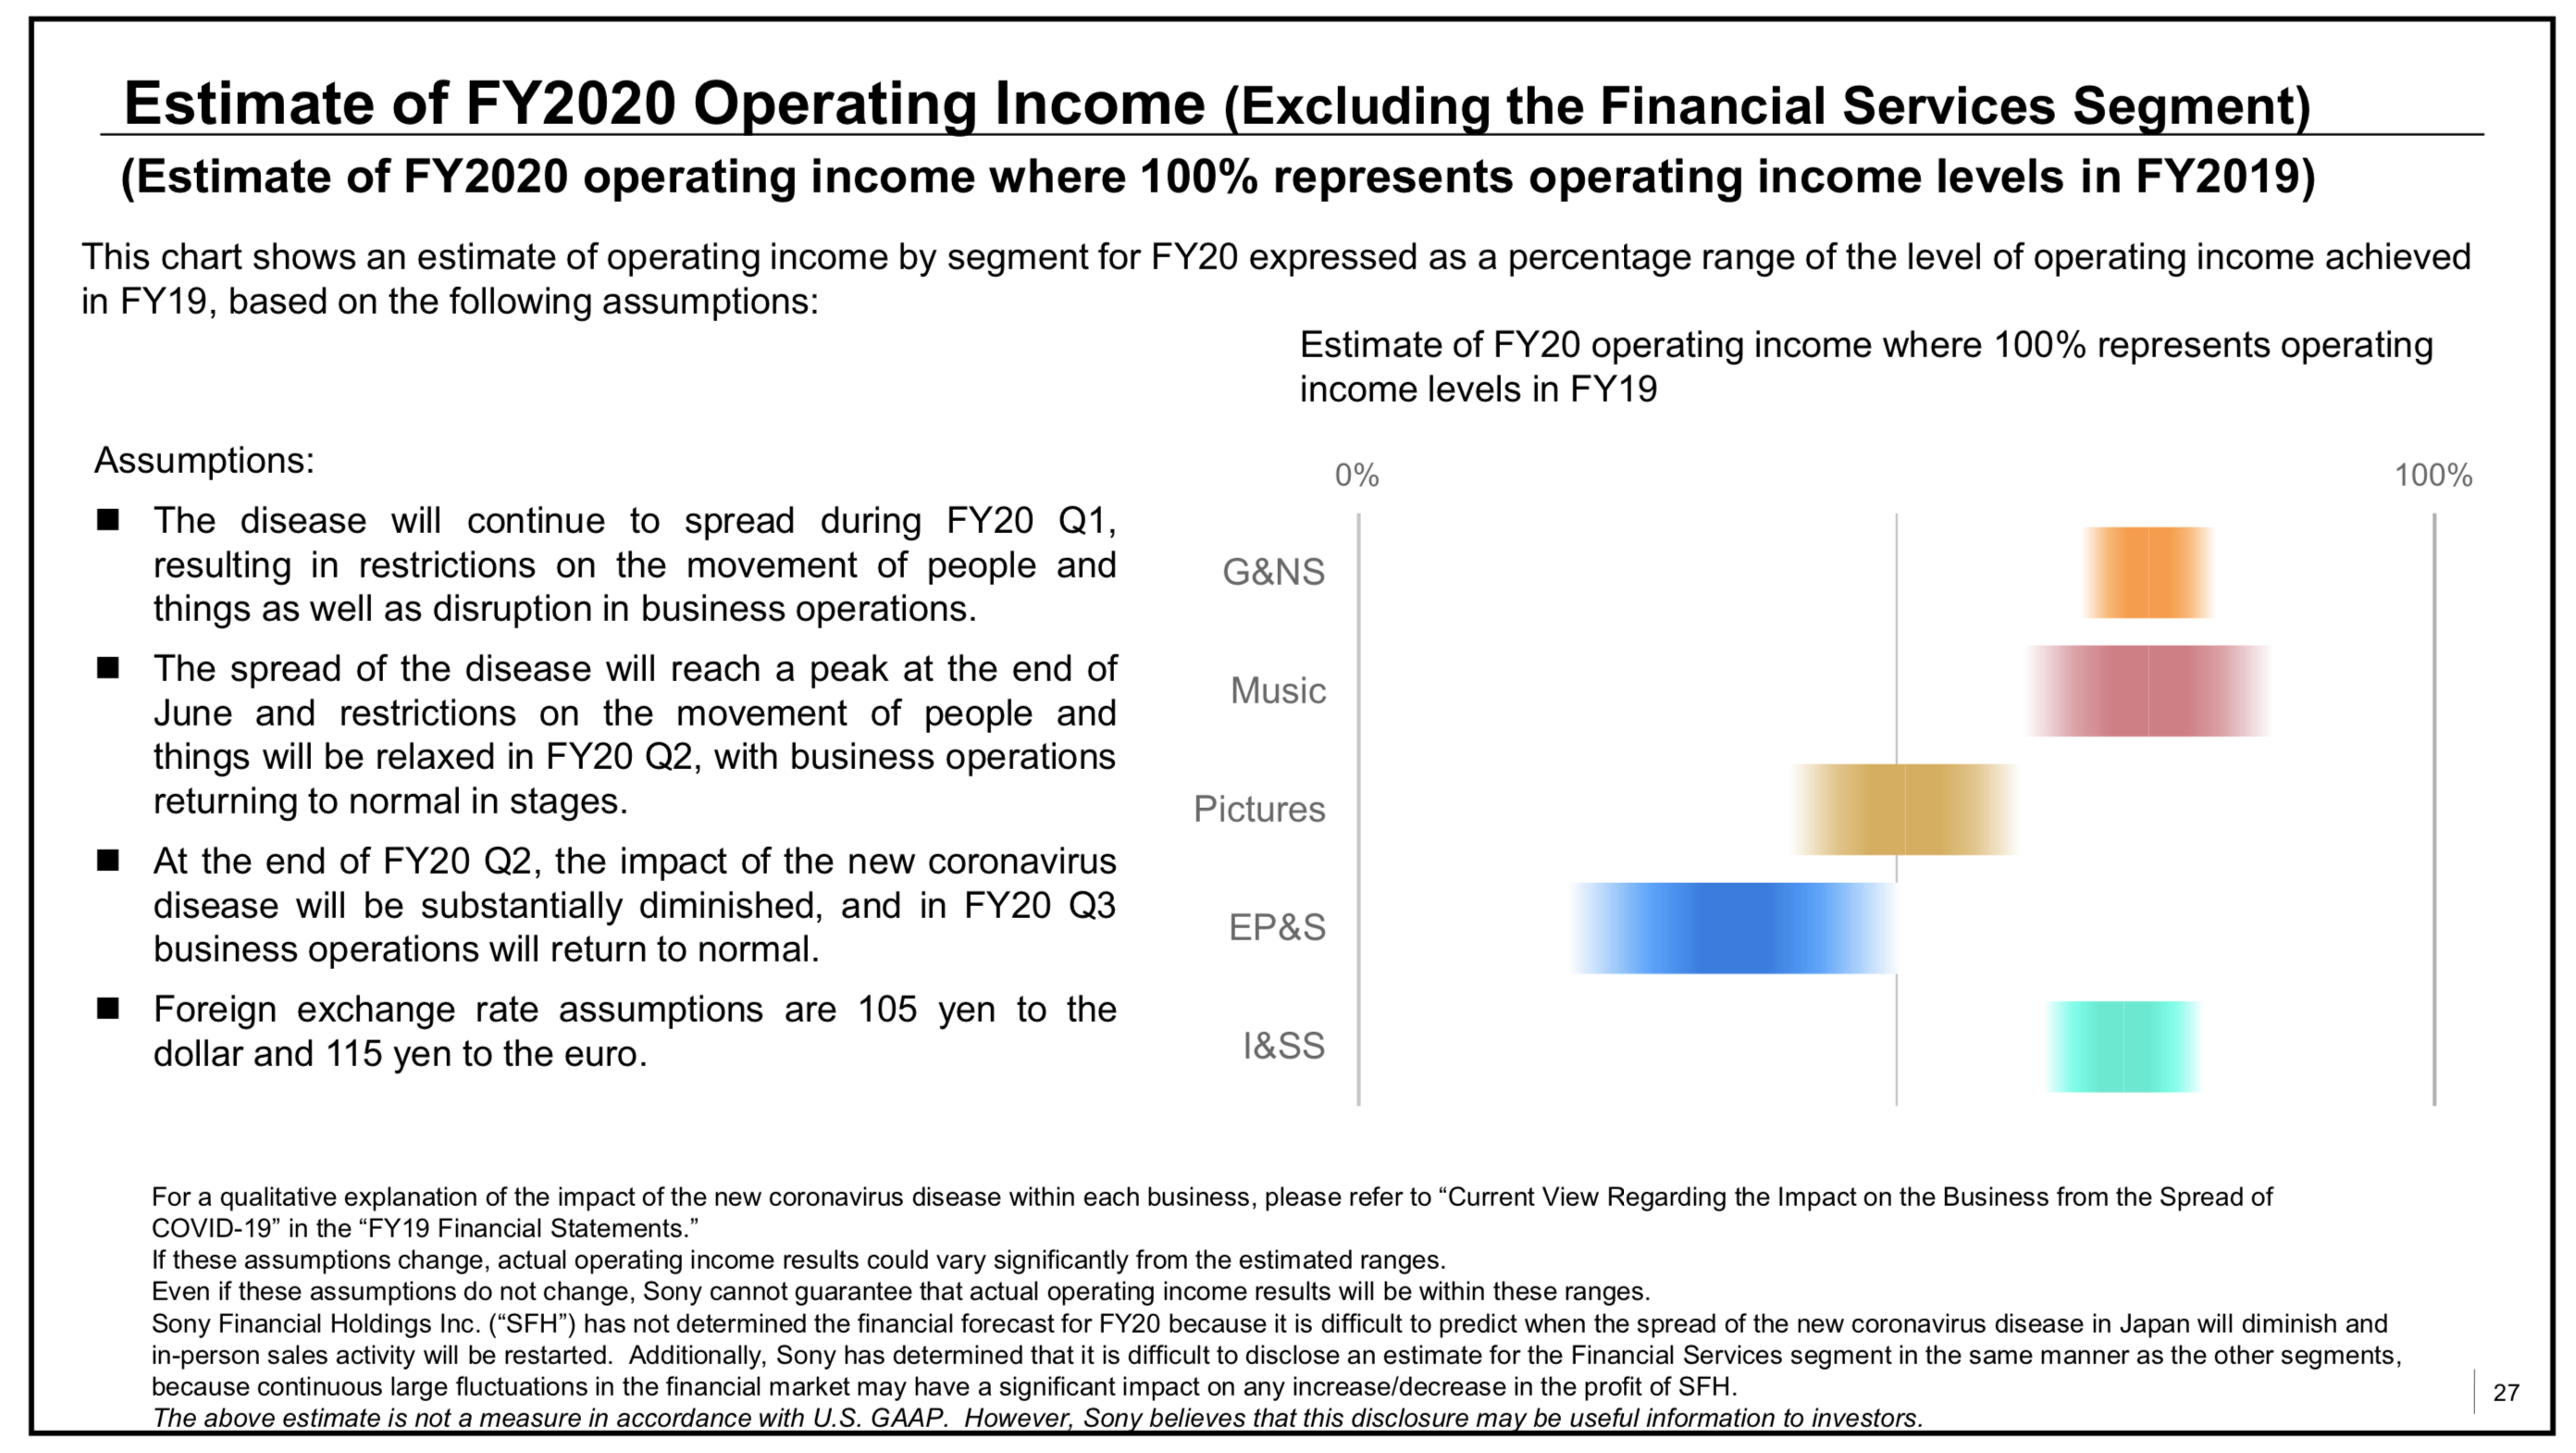 Sony Operating Income Estimate Fiscal Year 2020